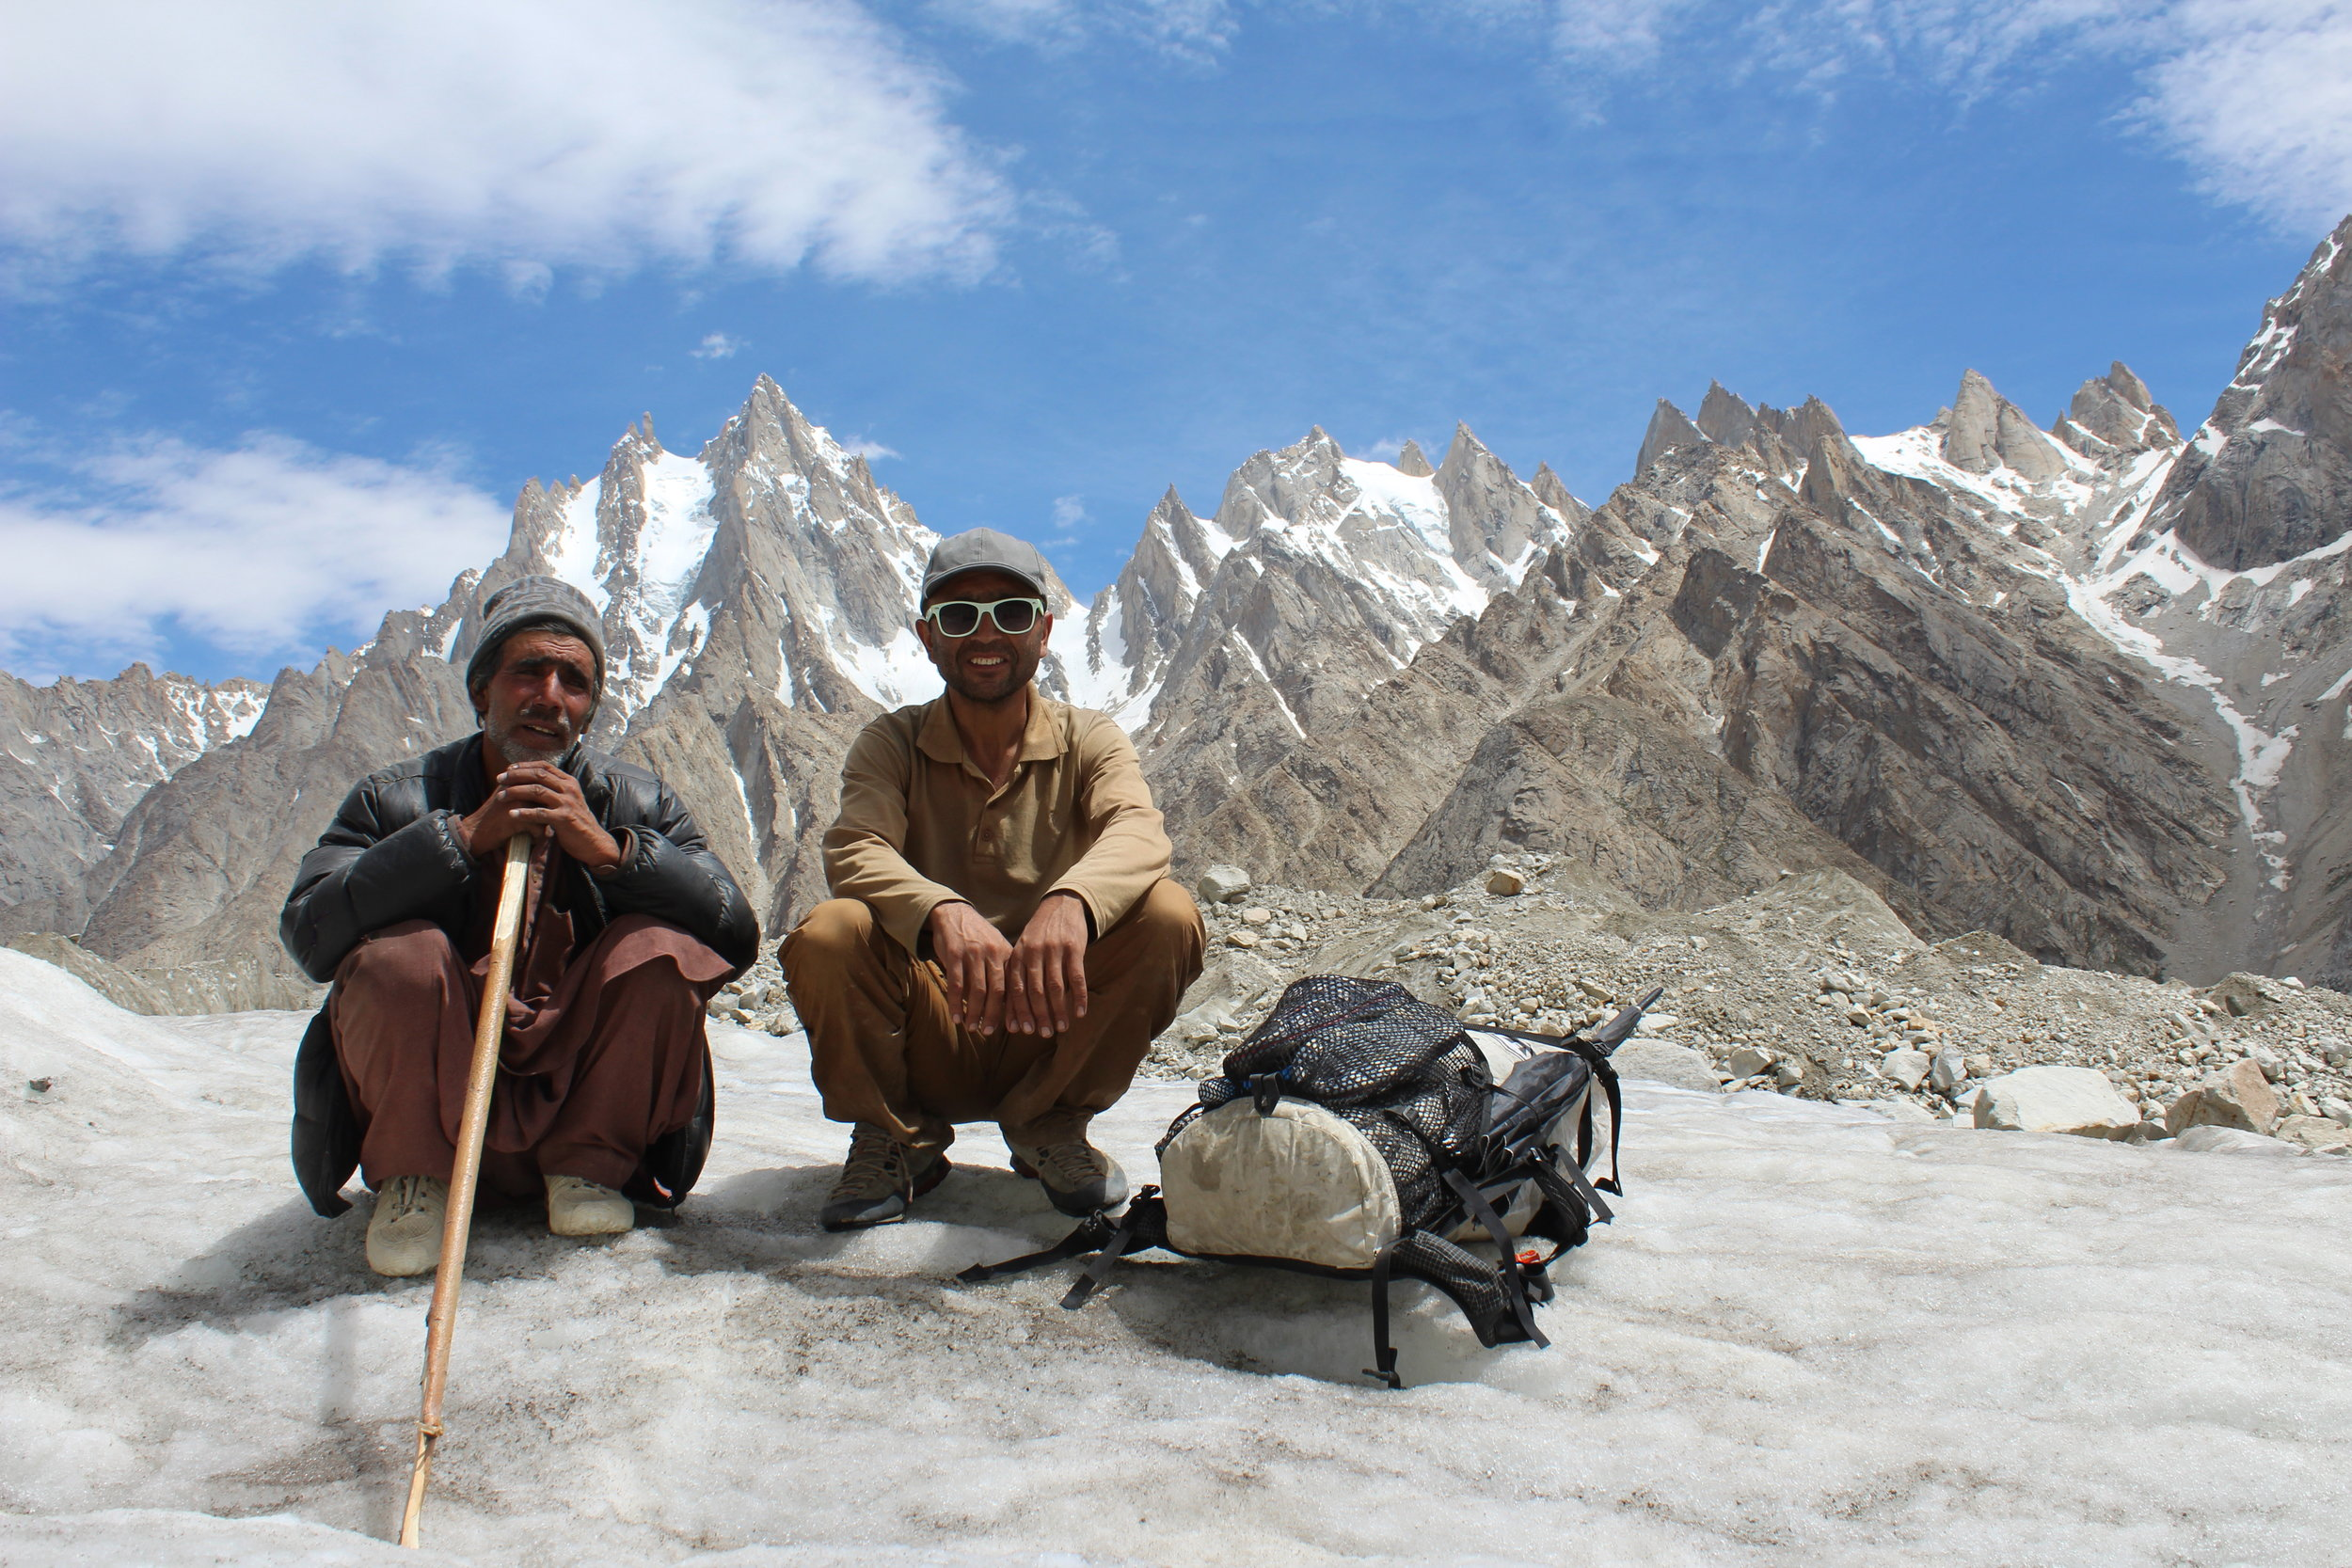 Hussain and Ghafoor waiting on us like usual. But we had made it to ridible glacier!